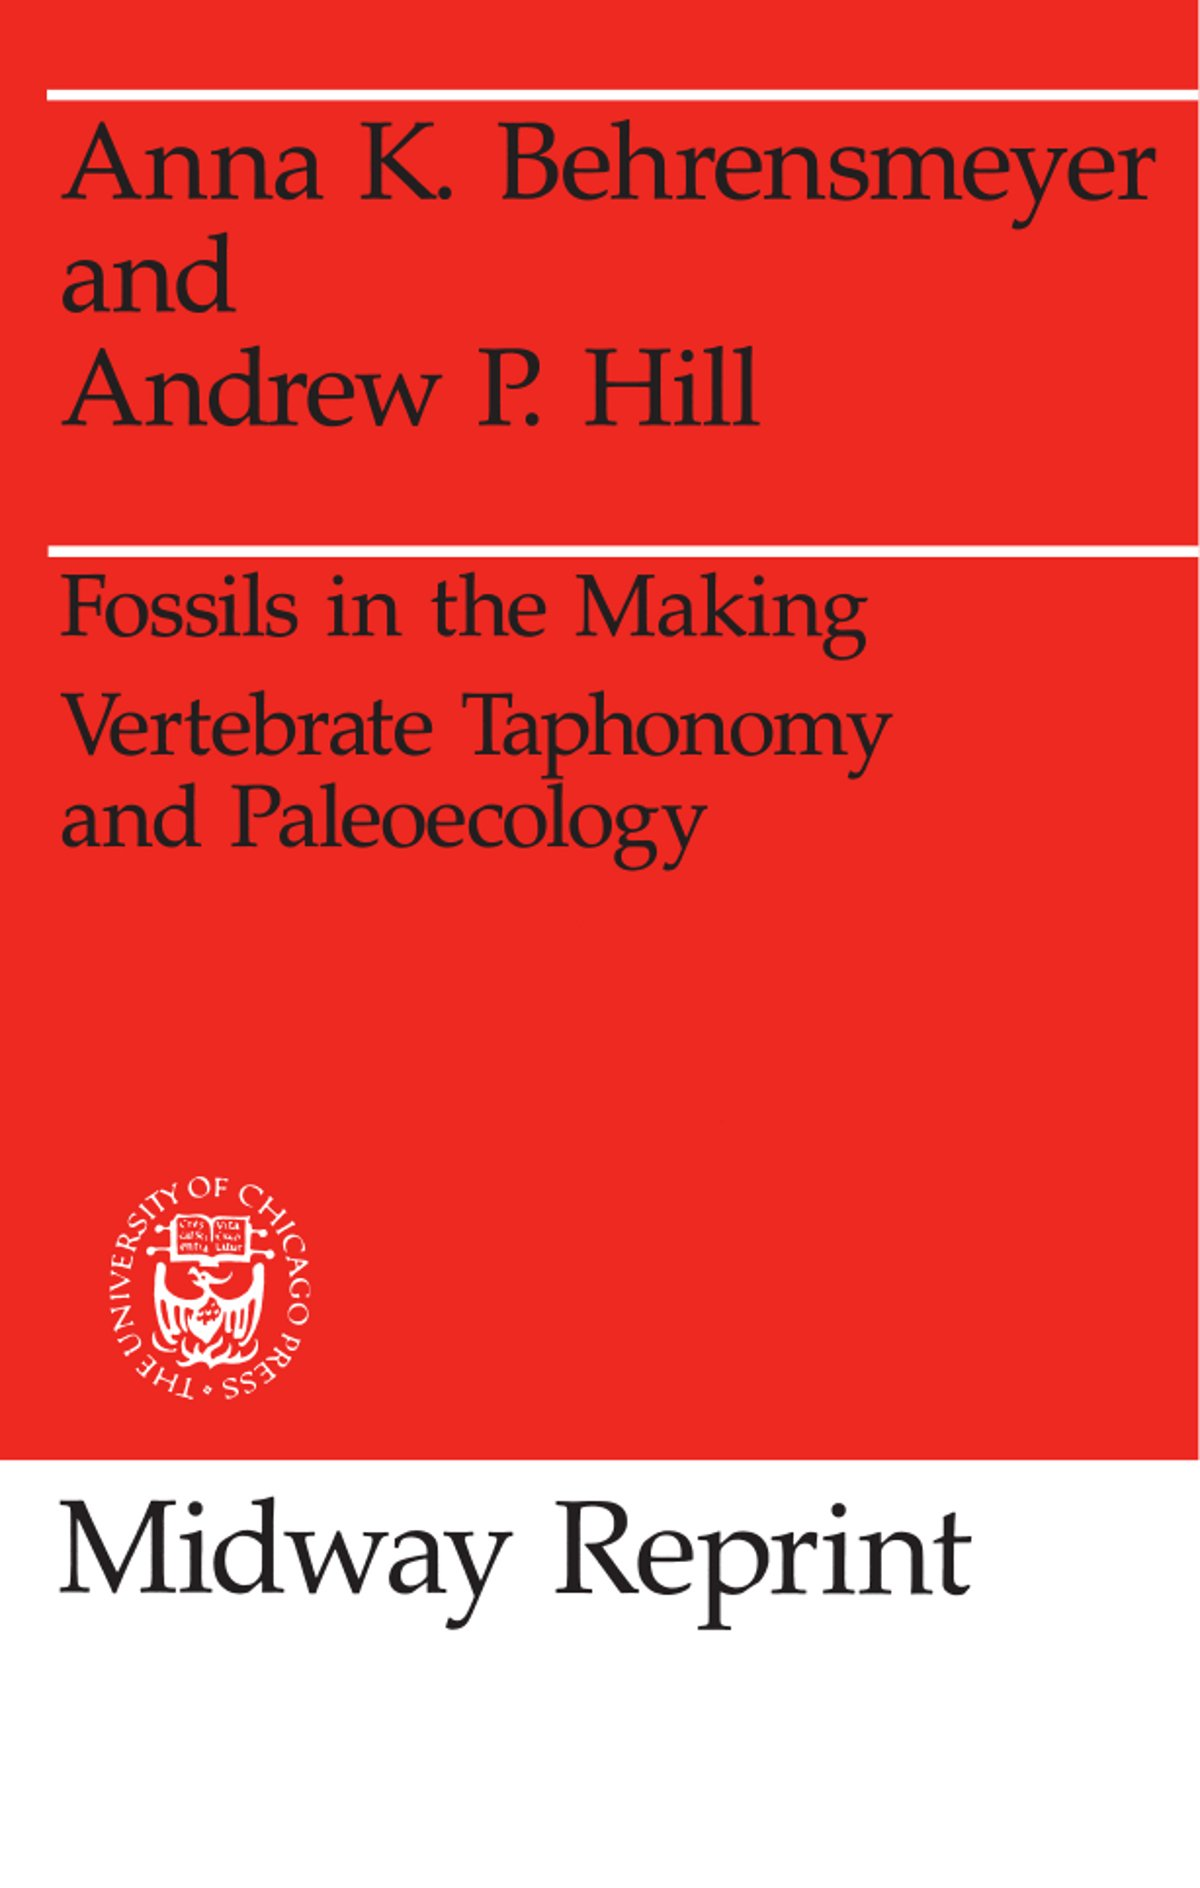 Fossils In The Making Vertebrate Taphonomy And Paleoecology